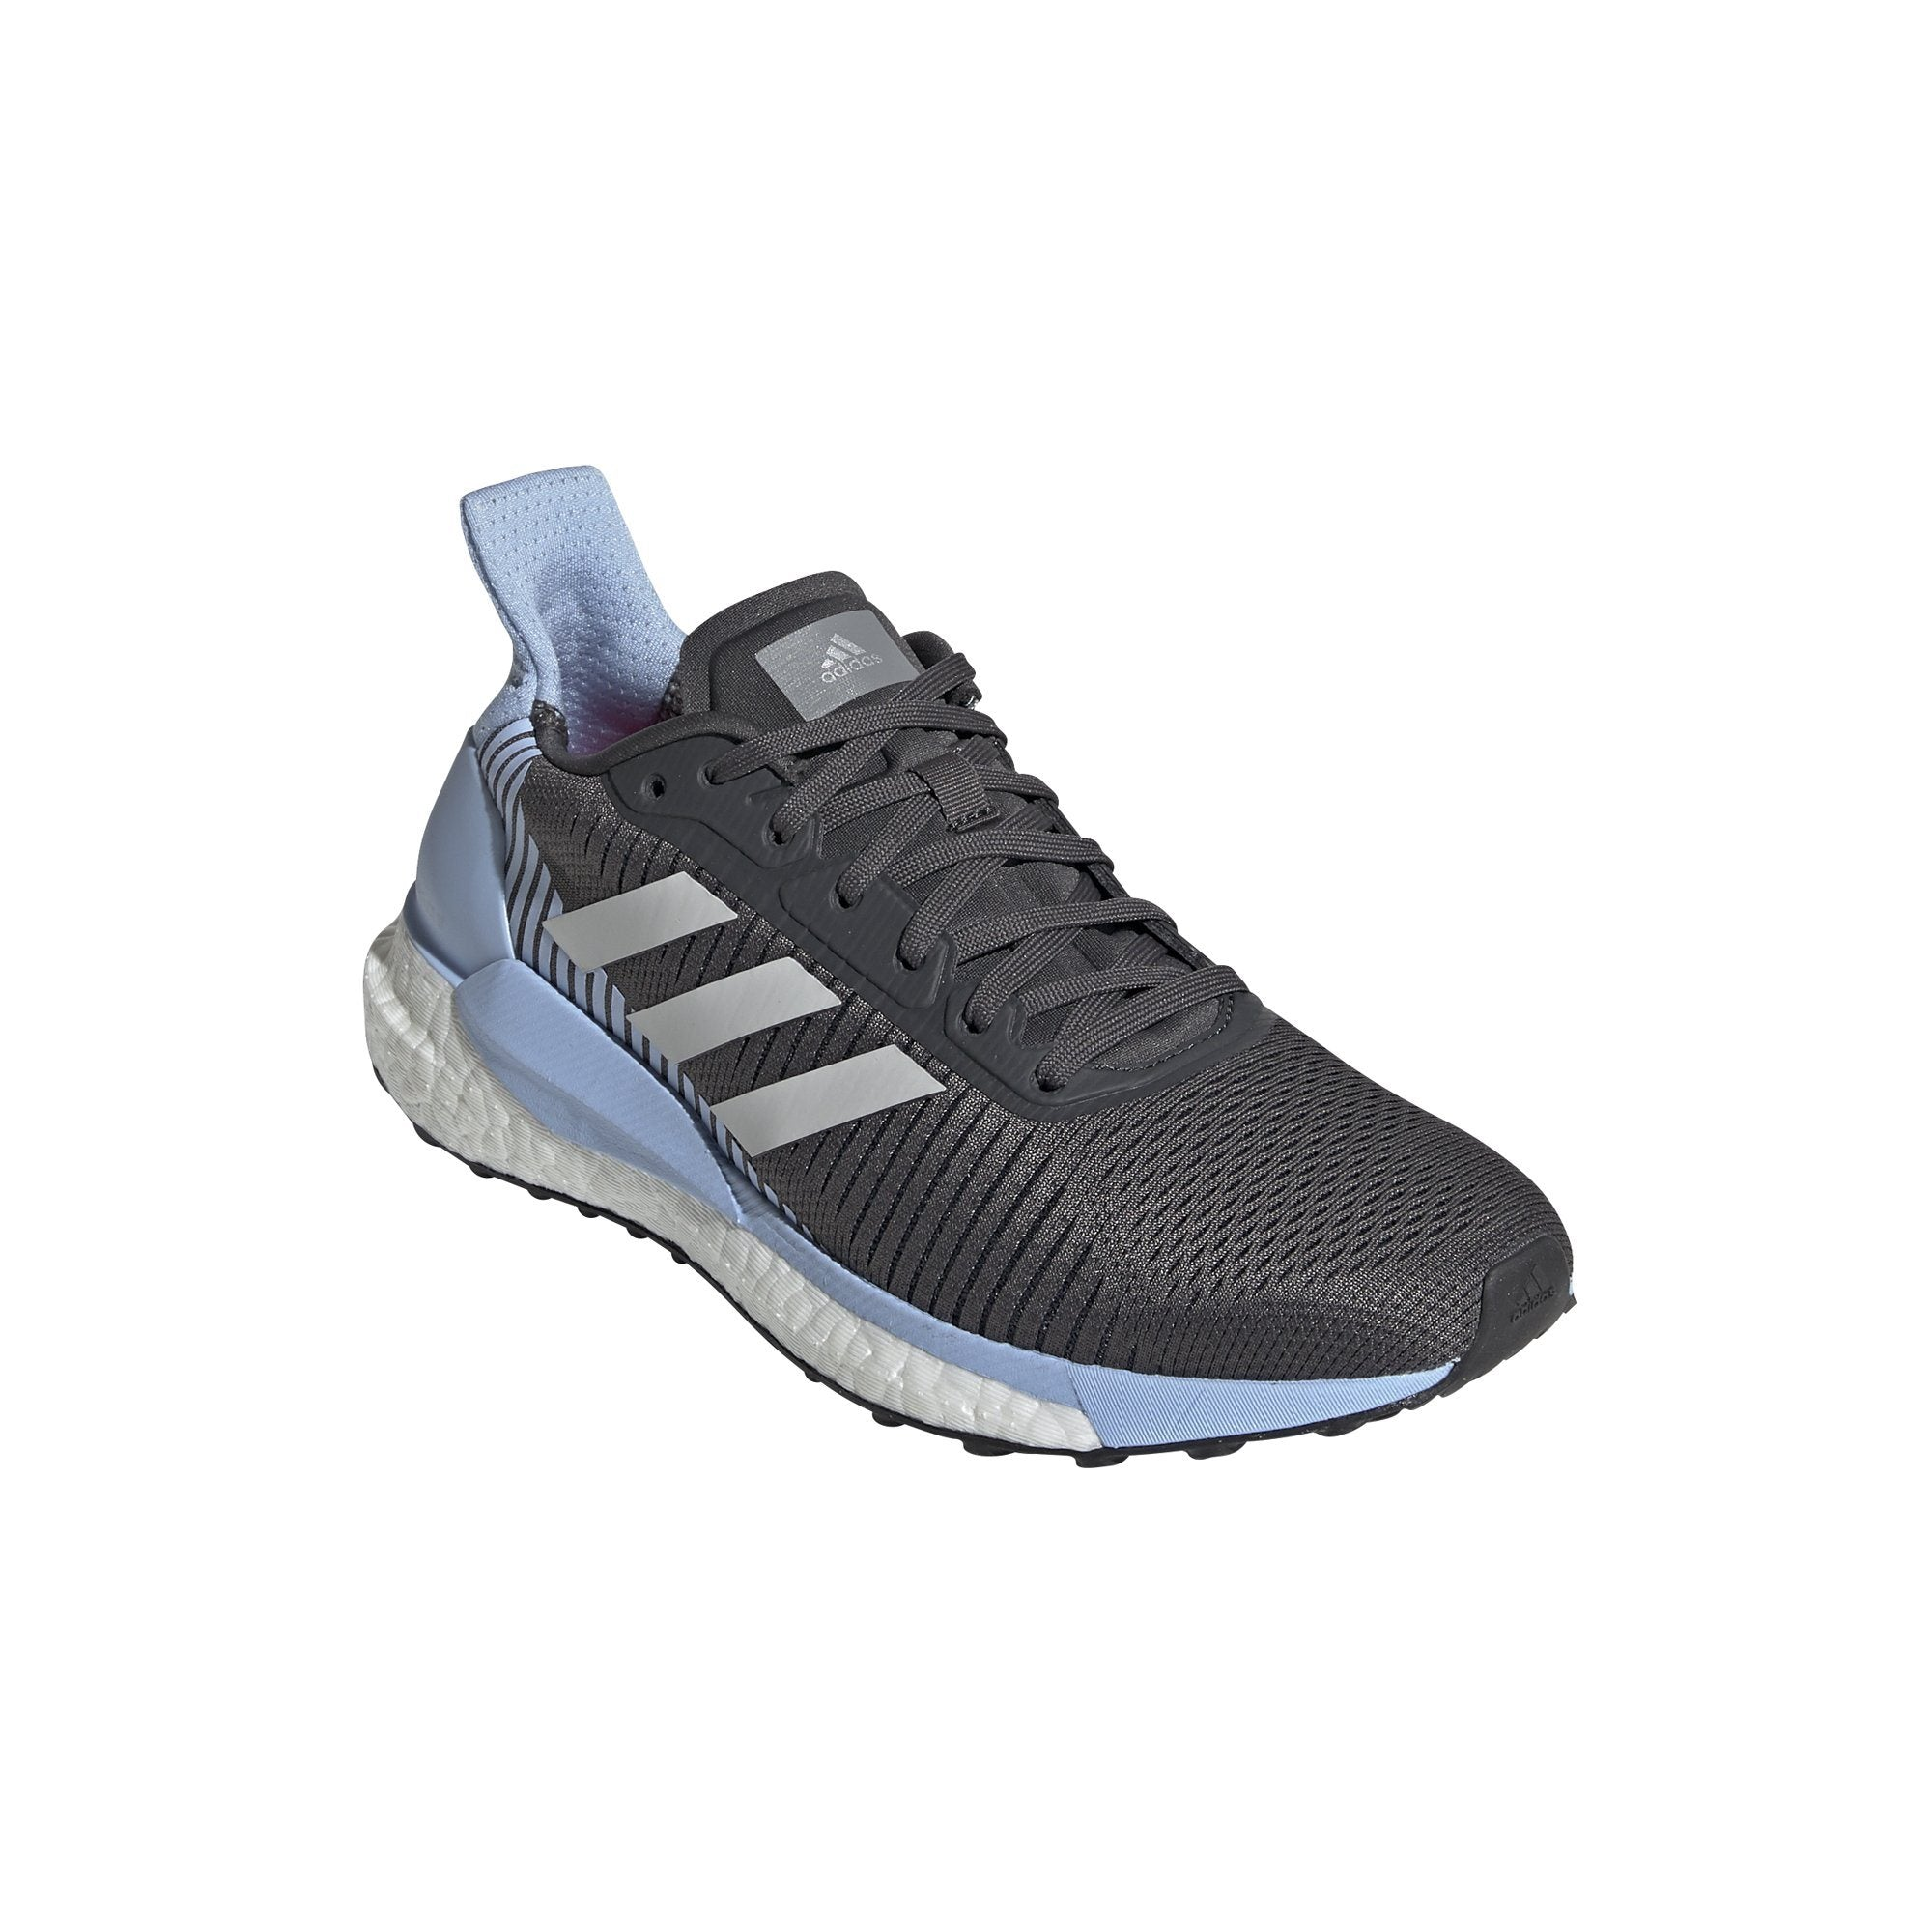 Adidas Womens SolarGlide ST 19 Shoes - grey six/GREY ONE F17/glow blue SP-FOOTWEAR-WOMENS Adidas